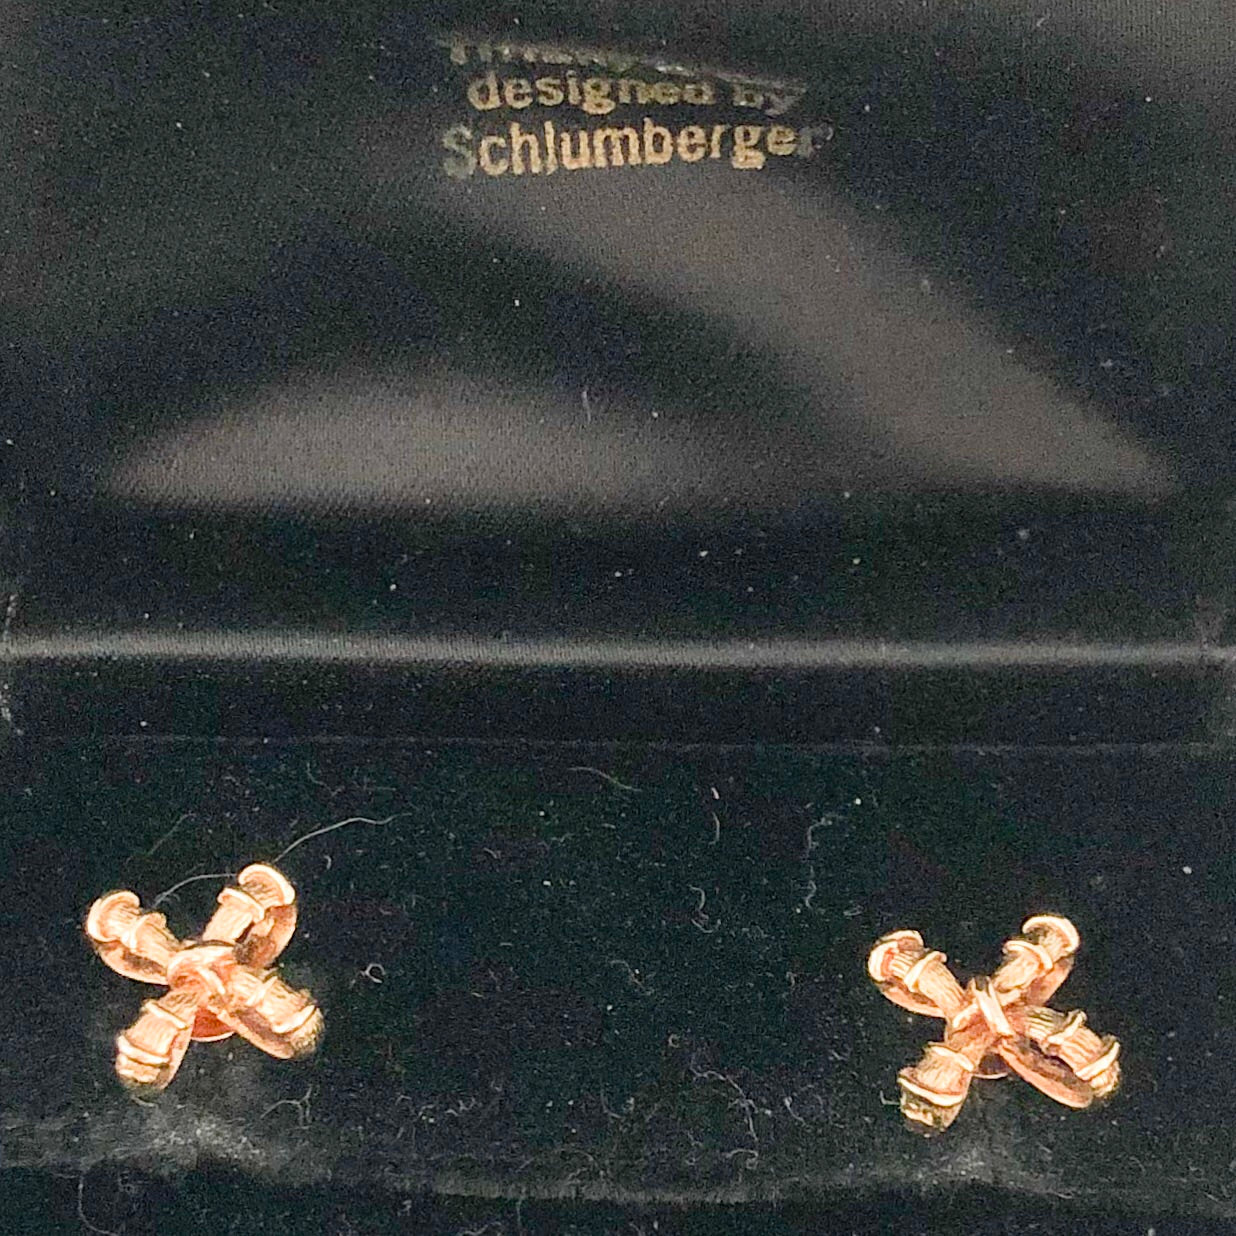 Tiffany Schlumberger 18K Yellow Gold Textured Cross Earrings CE0016